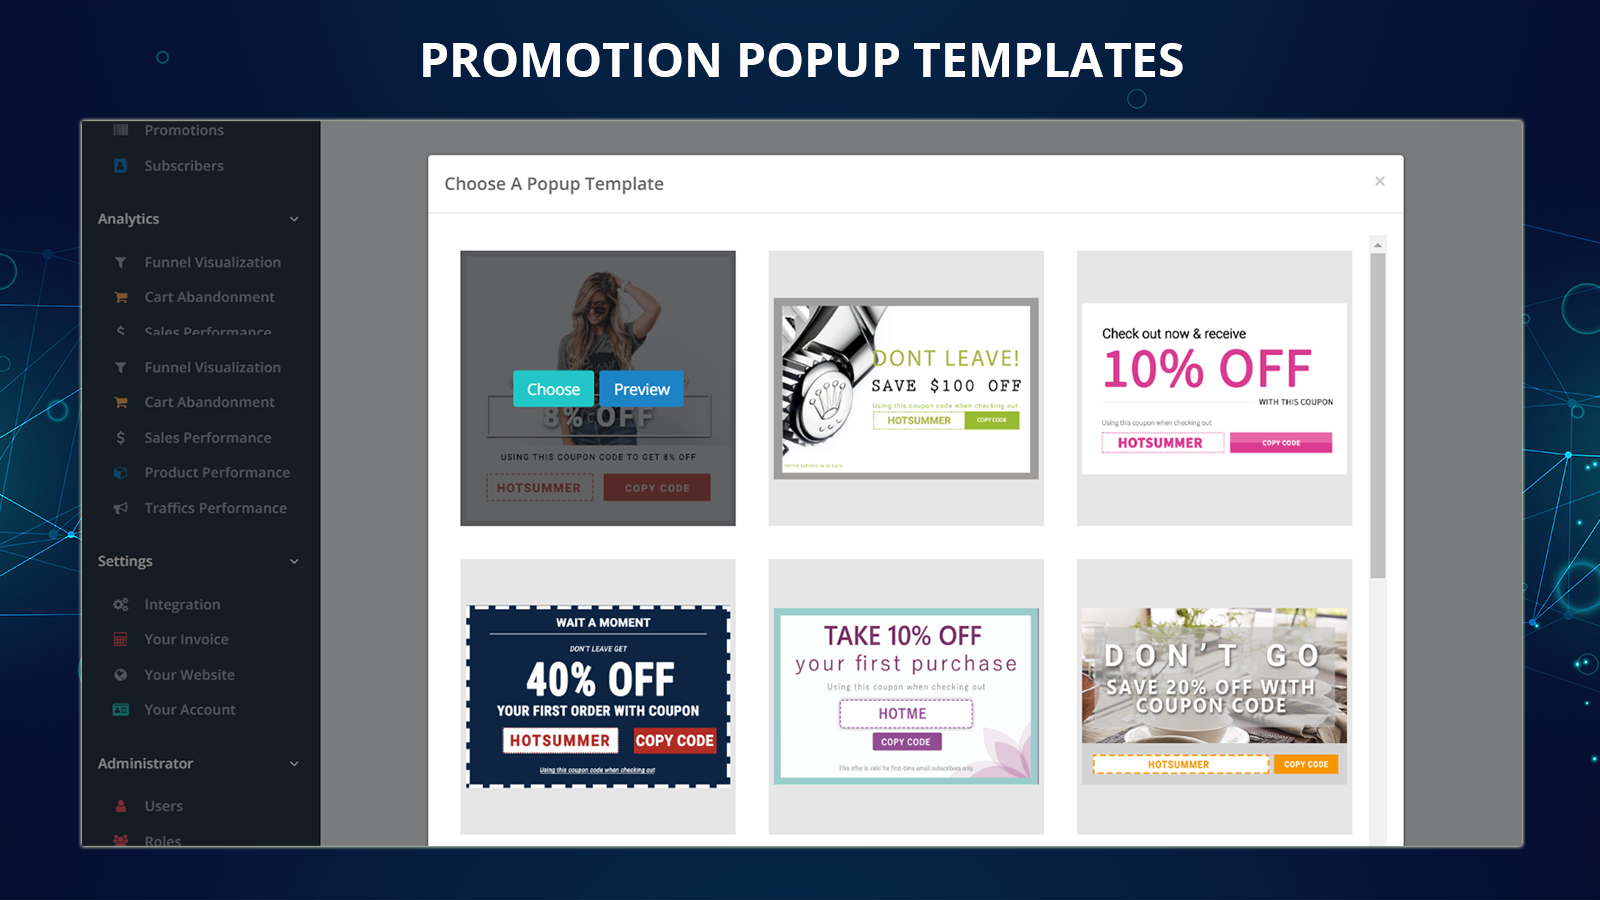 [Checkout Behavior] Checkout behavior report depicts the shopping behavior of your customers